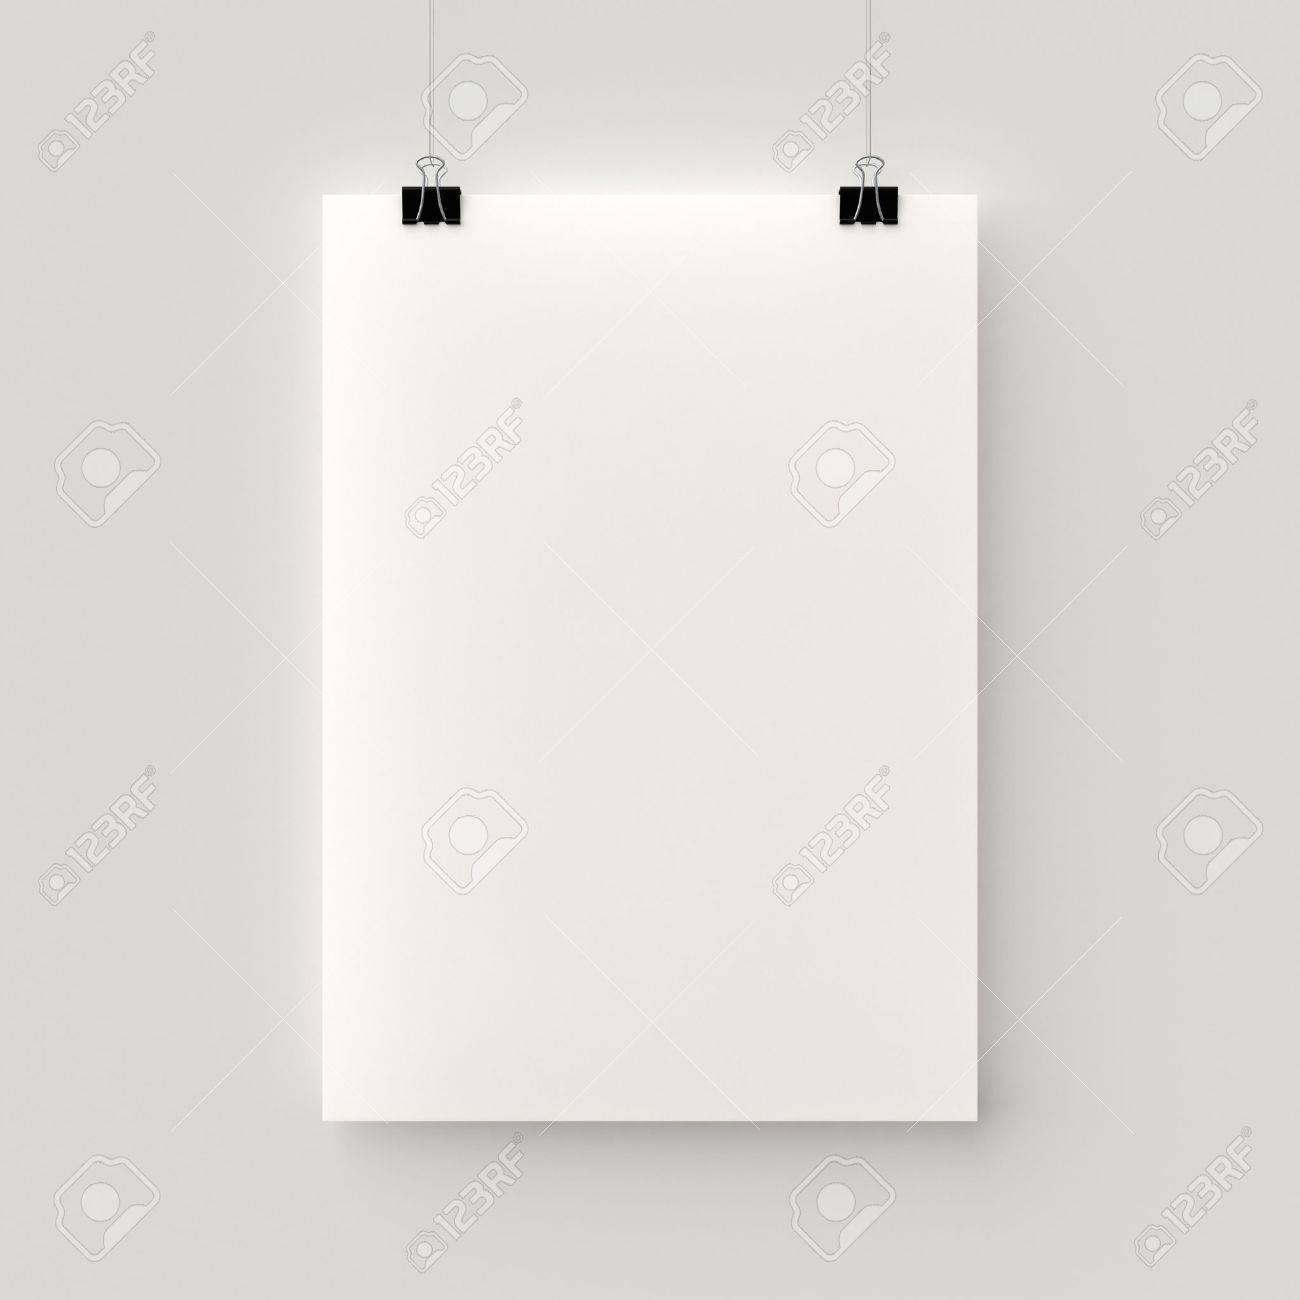 Poster Hanging On A Thread With Two Black Clips Blank Sheet Of Paper  Against A